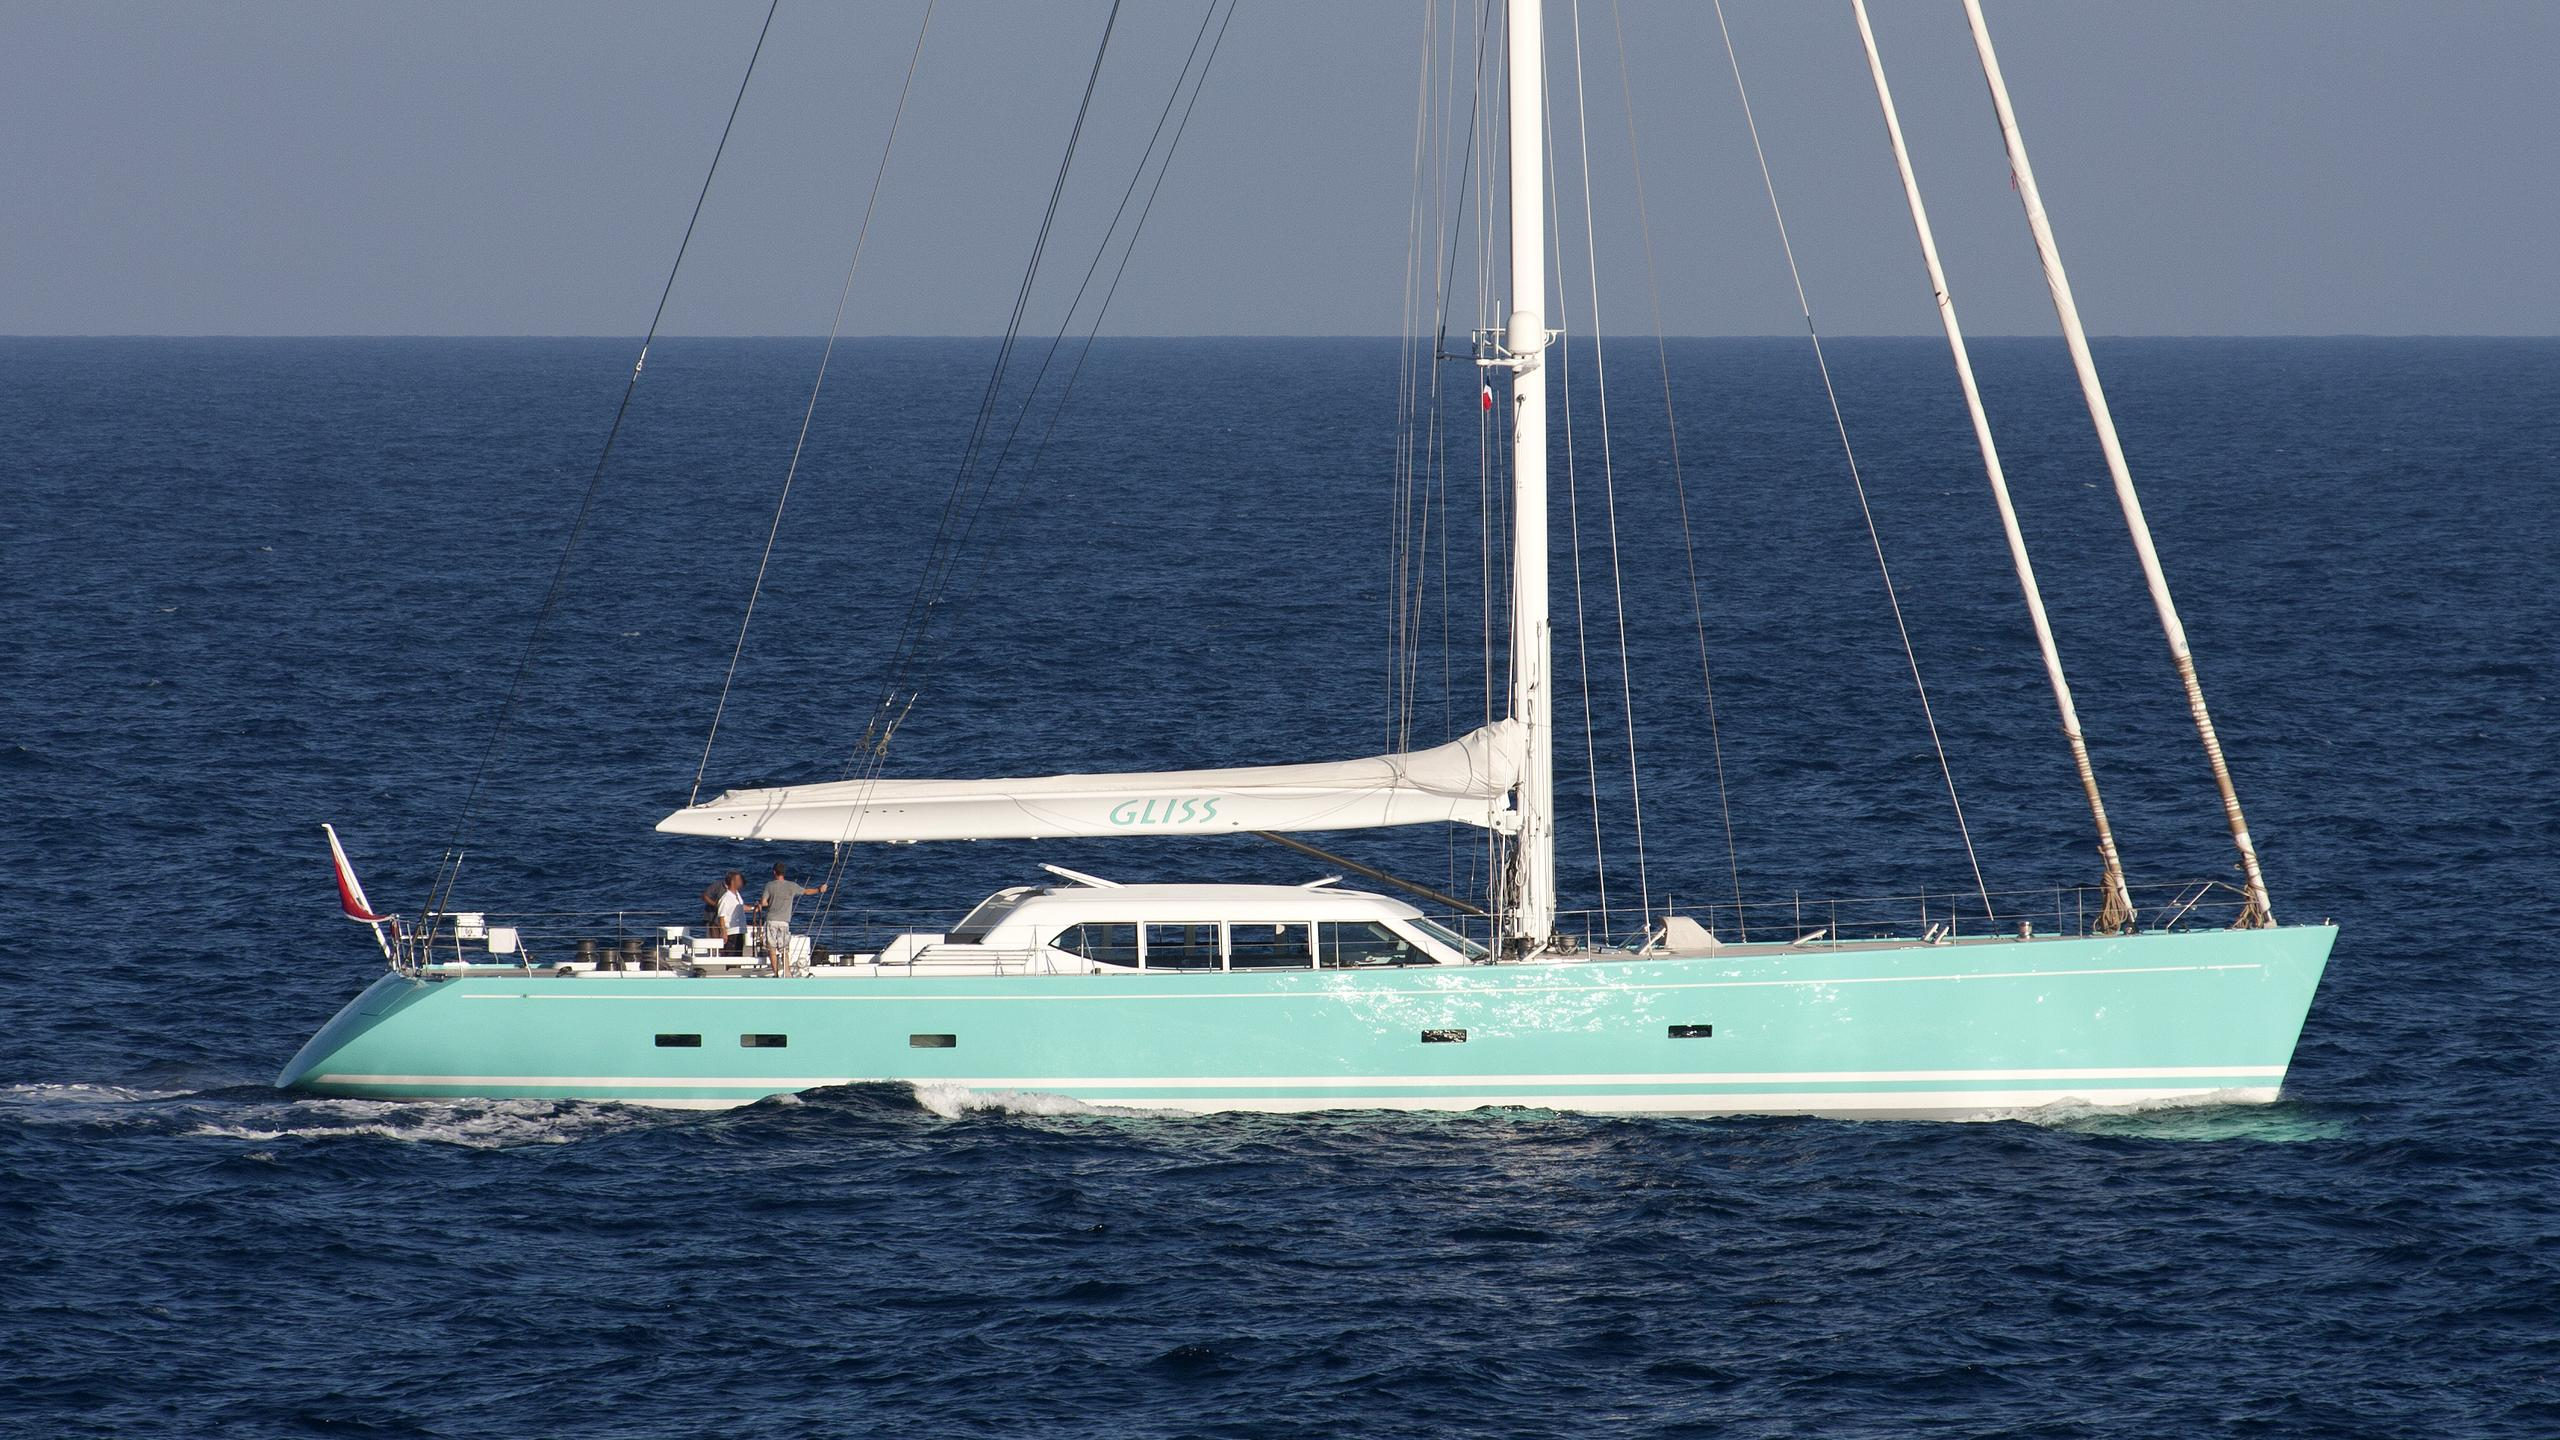 gliss-yacht-exterior